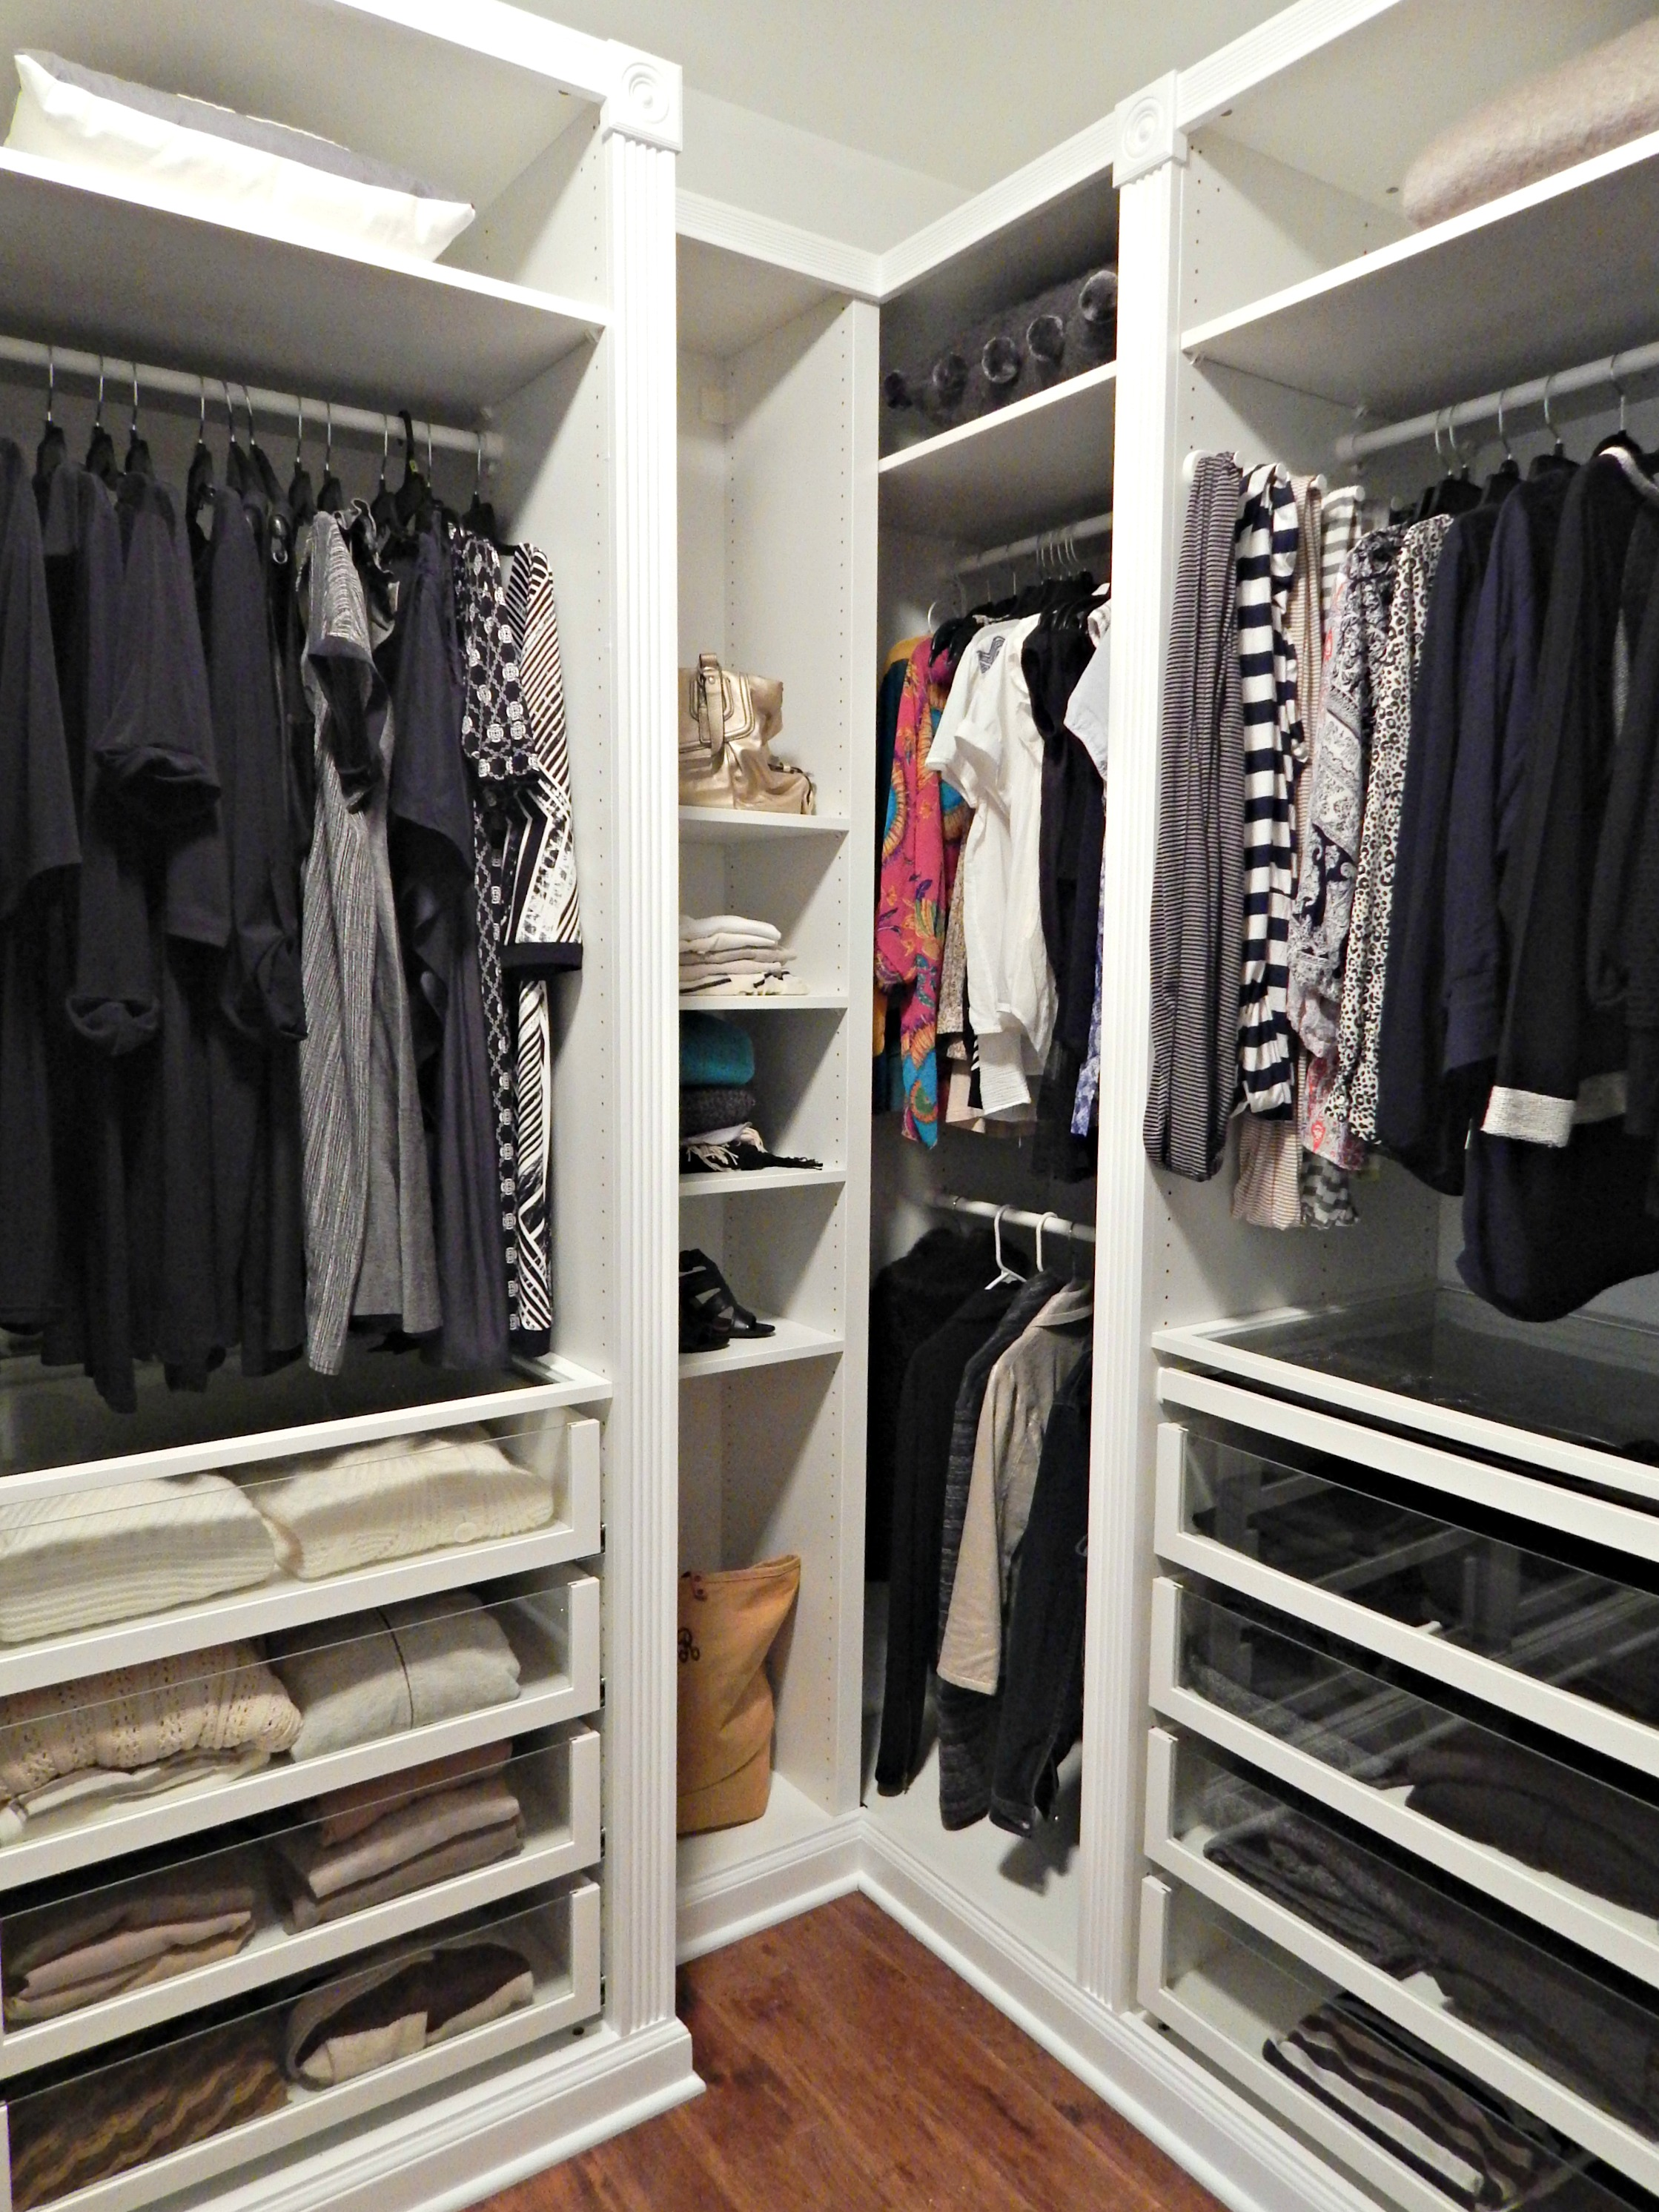 Revamping my Closet with the IKEA Pax Wardrobe Stylish Revamp